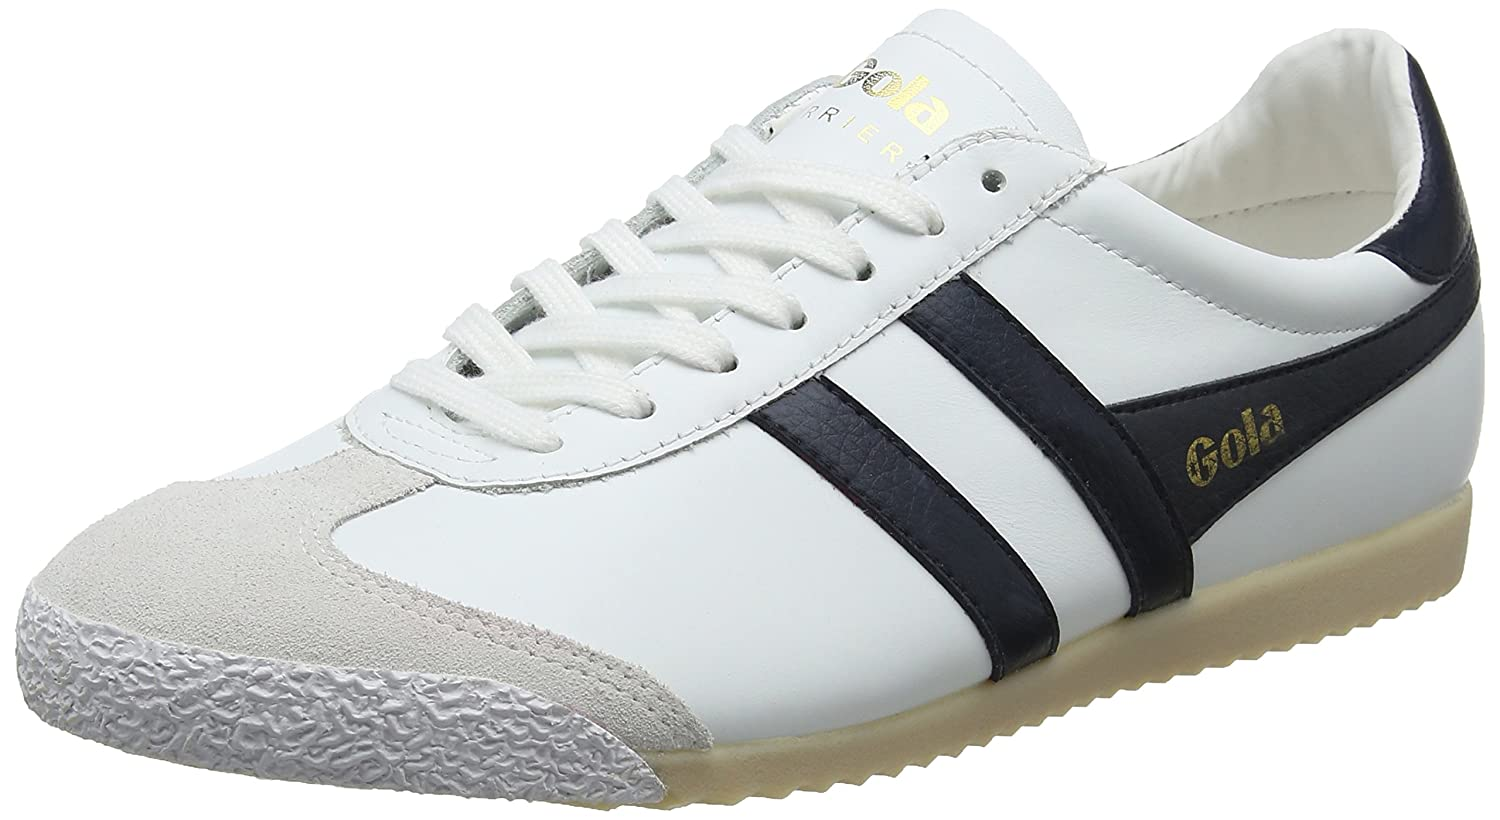 Gola Herren Harrier 50 Leather Turnschuhe